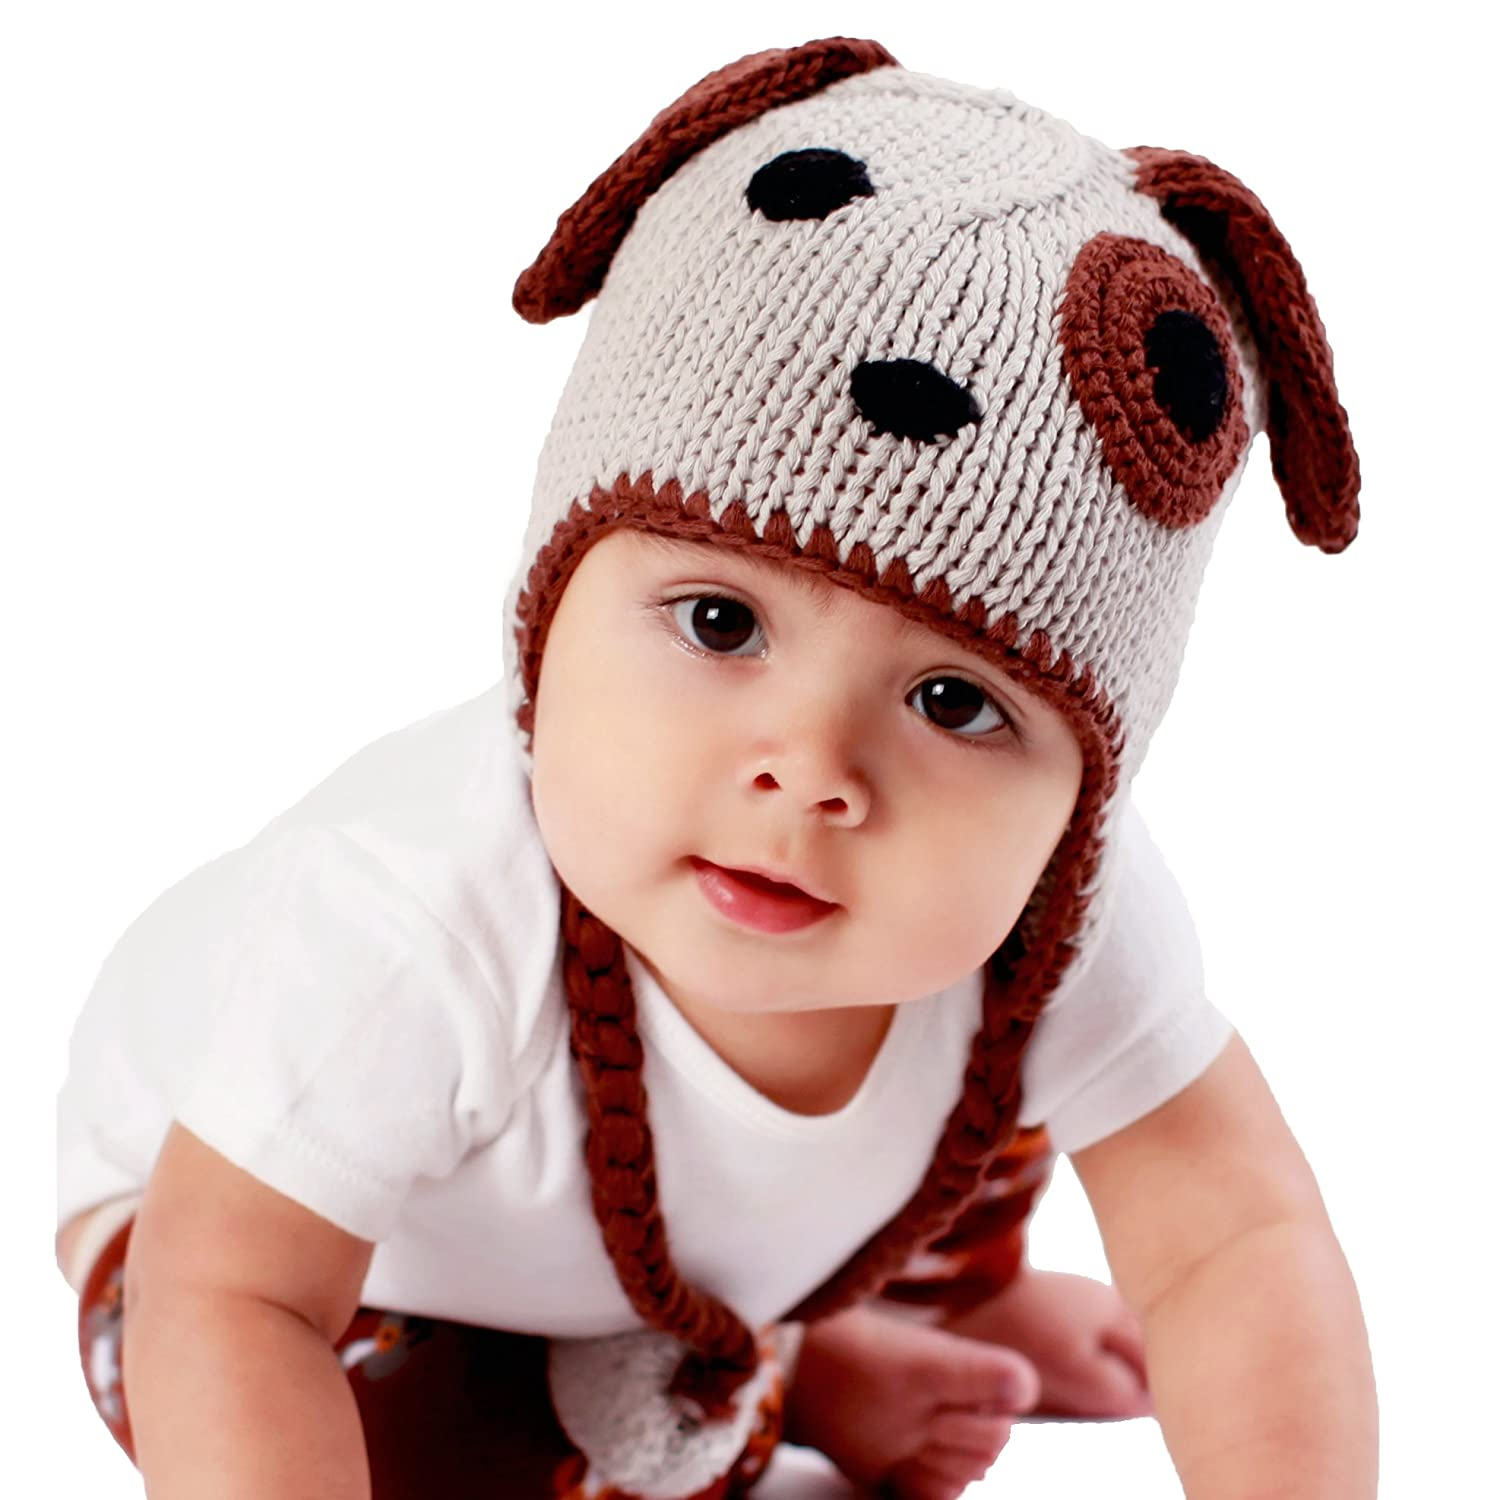 c886384bfc7 Amazon.com  Huggalugs Baby and Toddler Boys or Girls Puppy Dog Beanie Hat  or Separate Legwarmers  Clothing